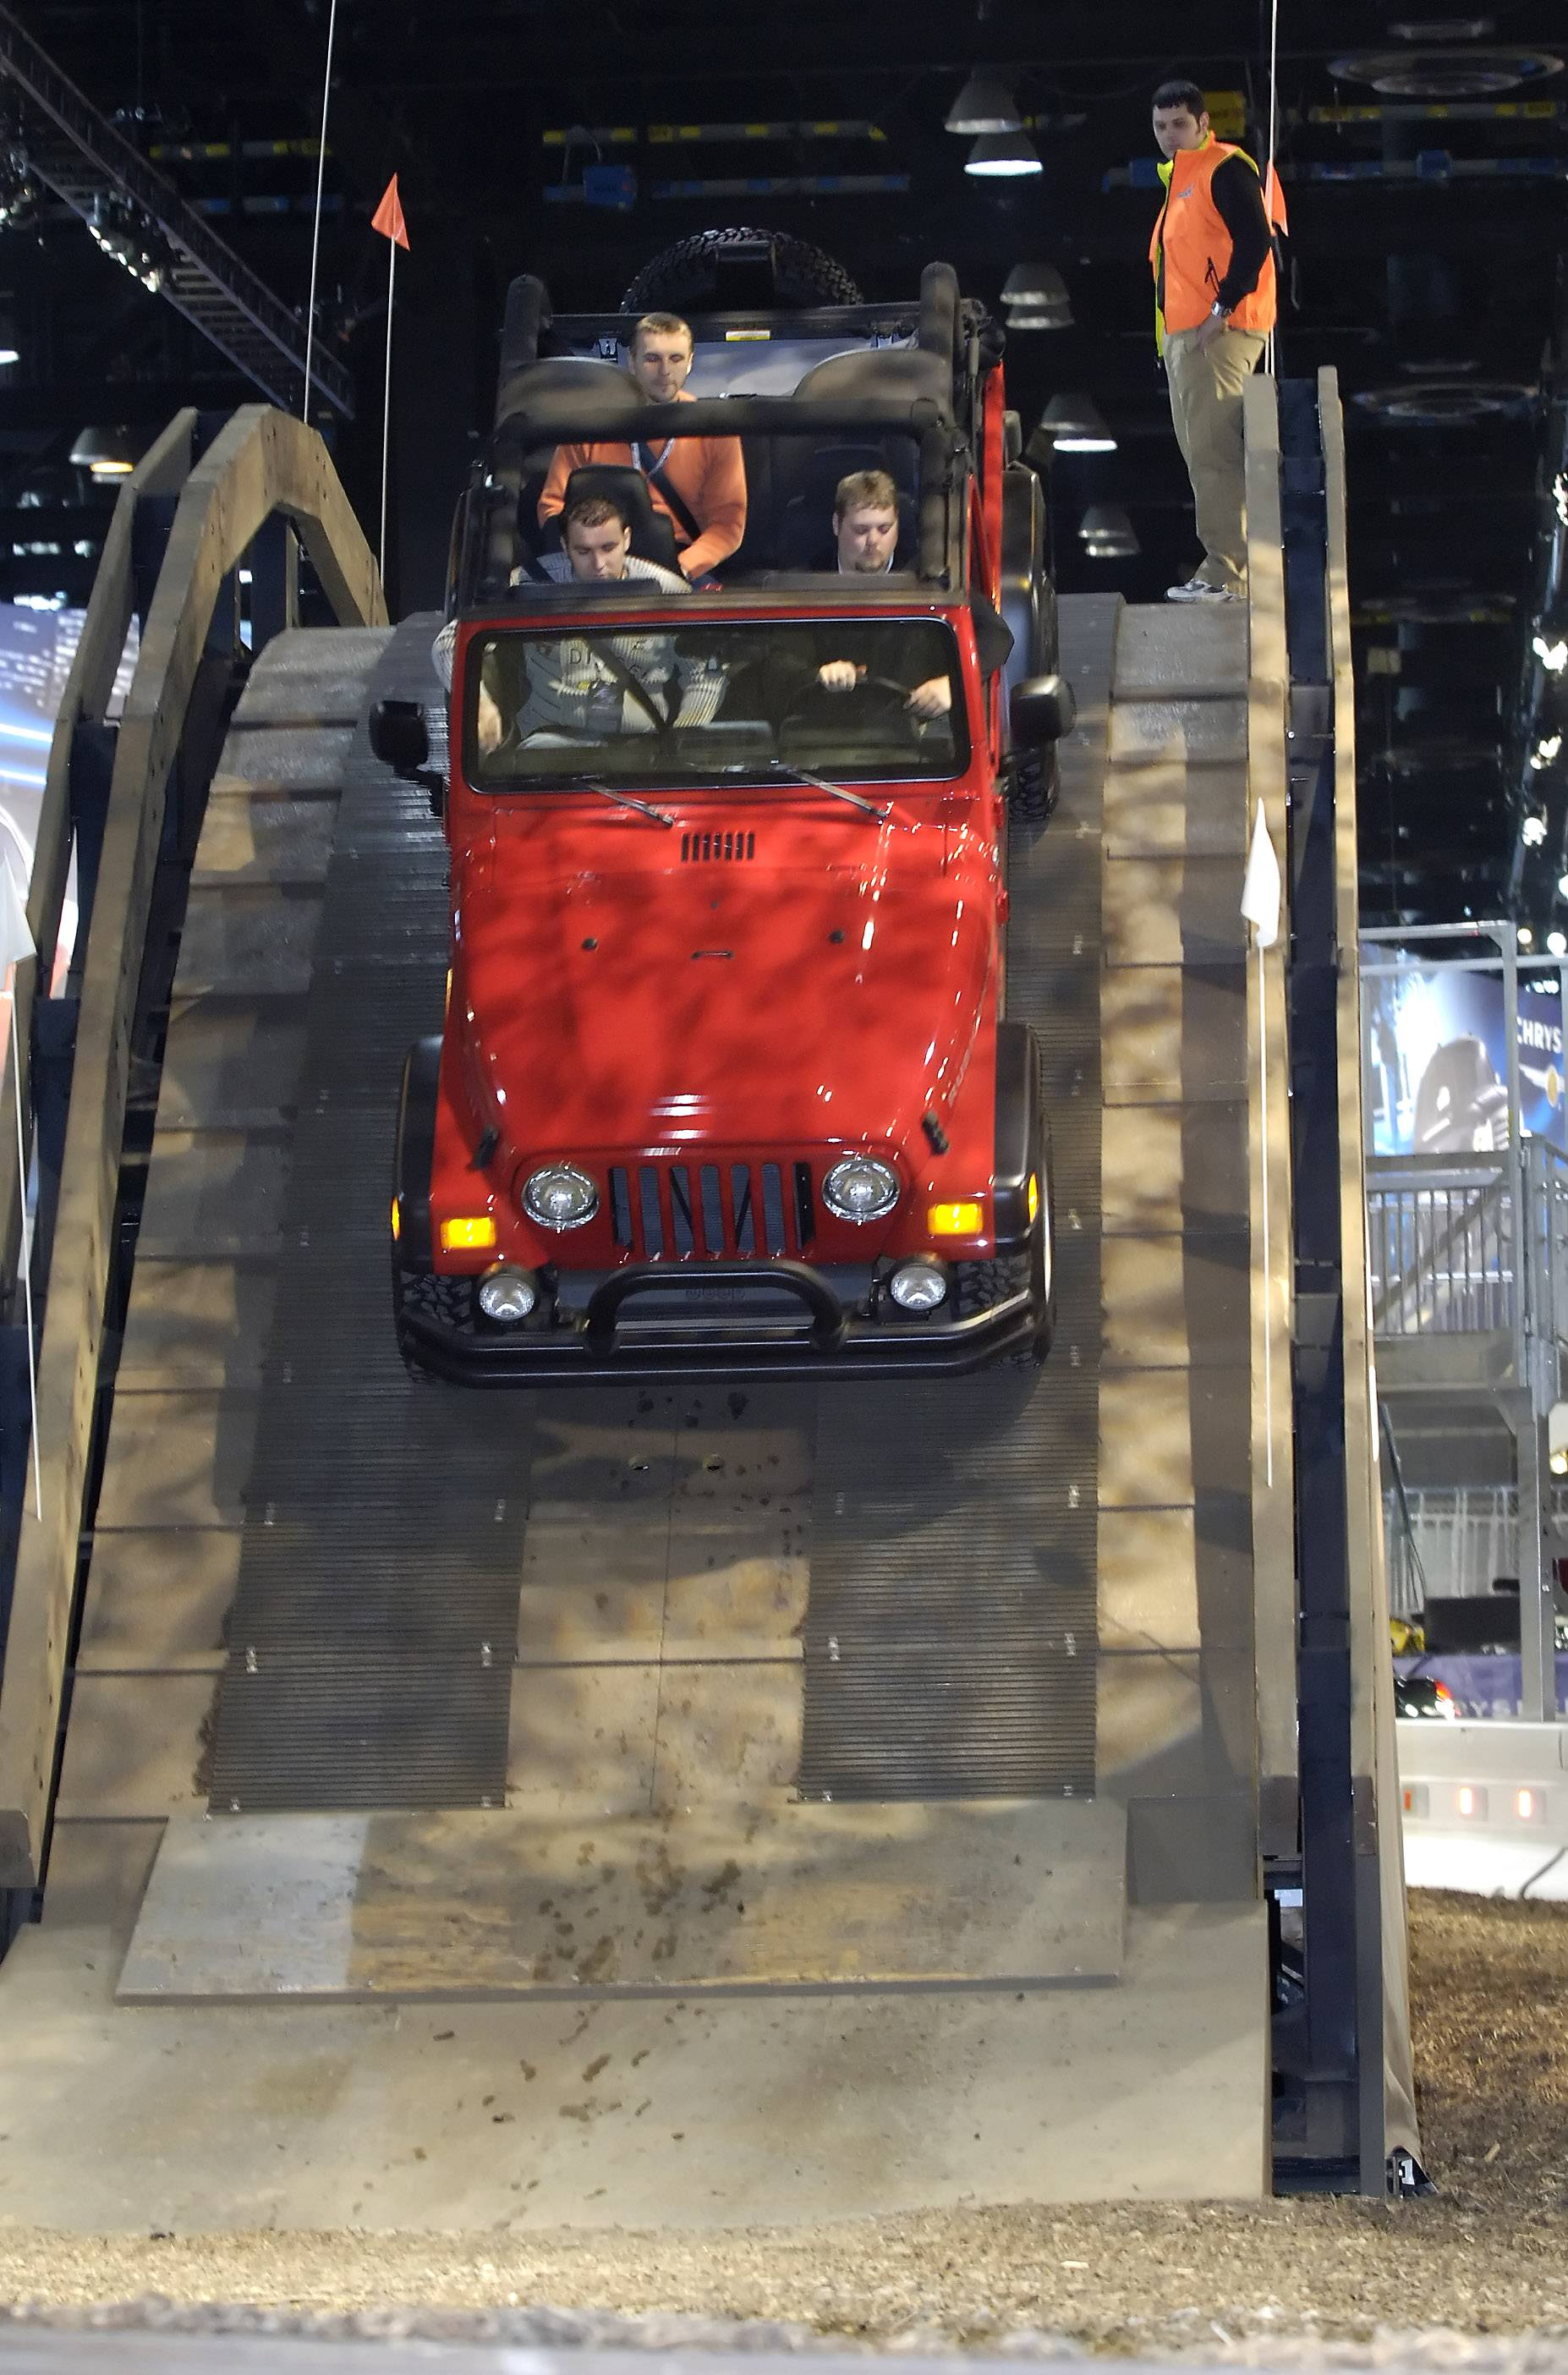 Test tracks and interactive displays add to the fun at the Chicago Auto Show coming Saturday.